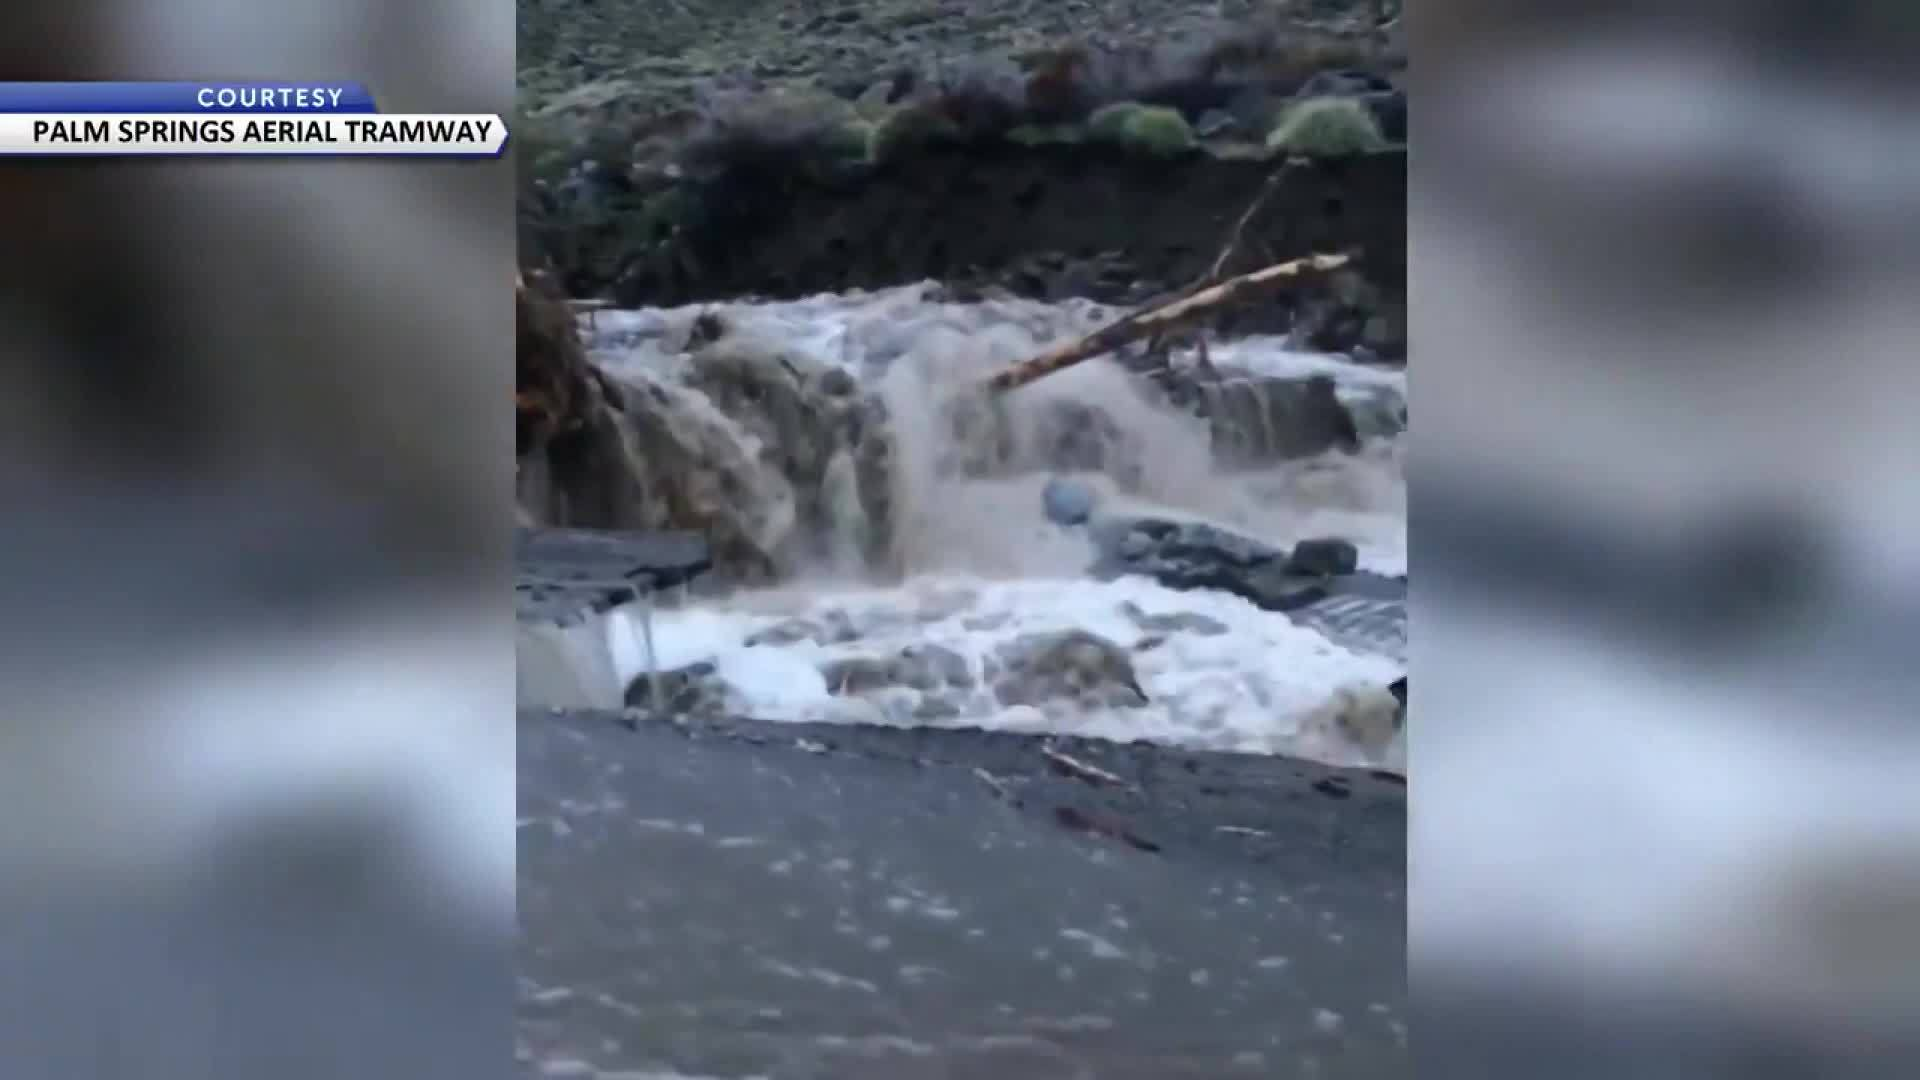 New Video: Flooding Causes Heavy Damage At Palm Springs Aerial Tramway